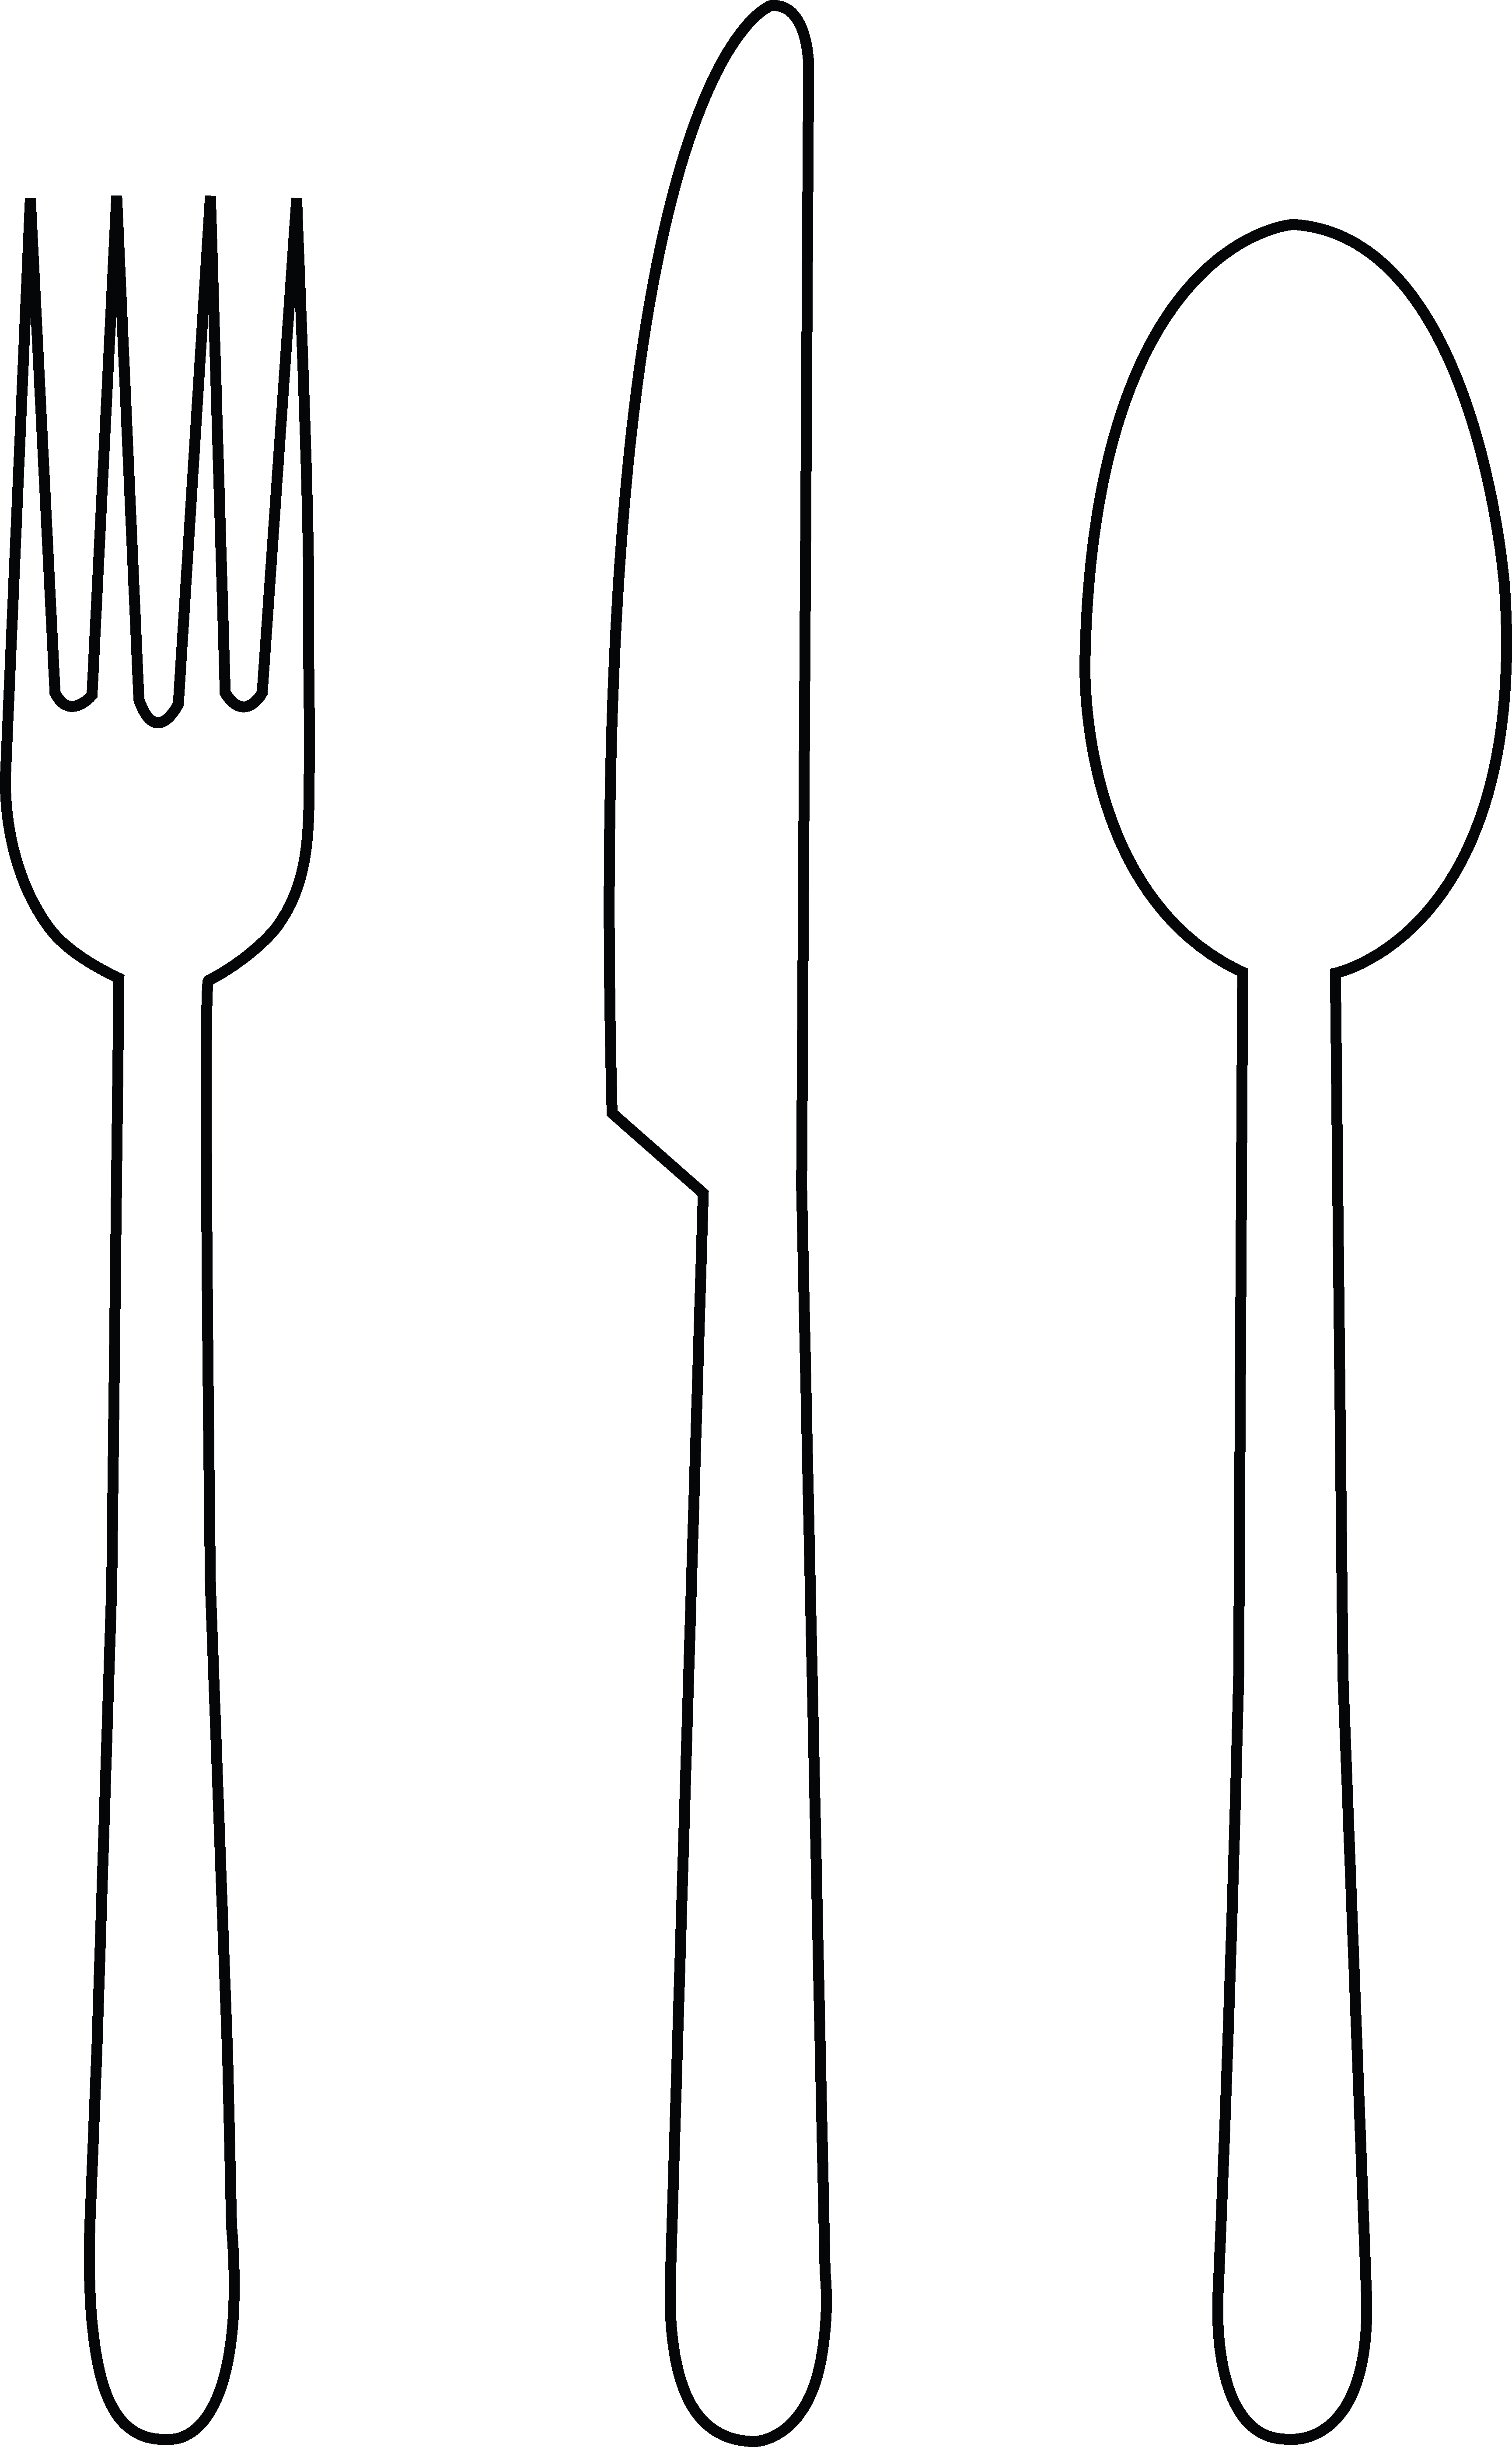 Bbq fork and knife png. Collection of clipart